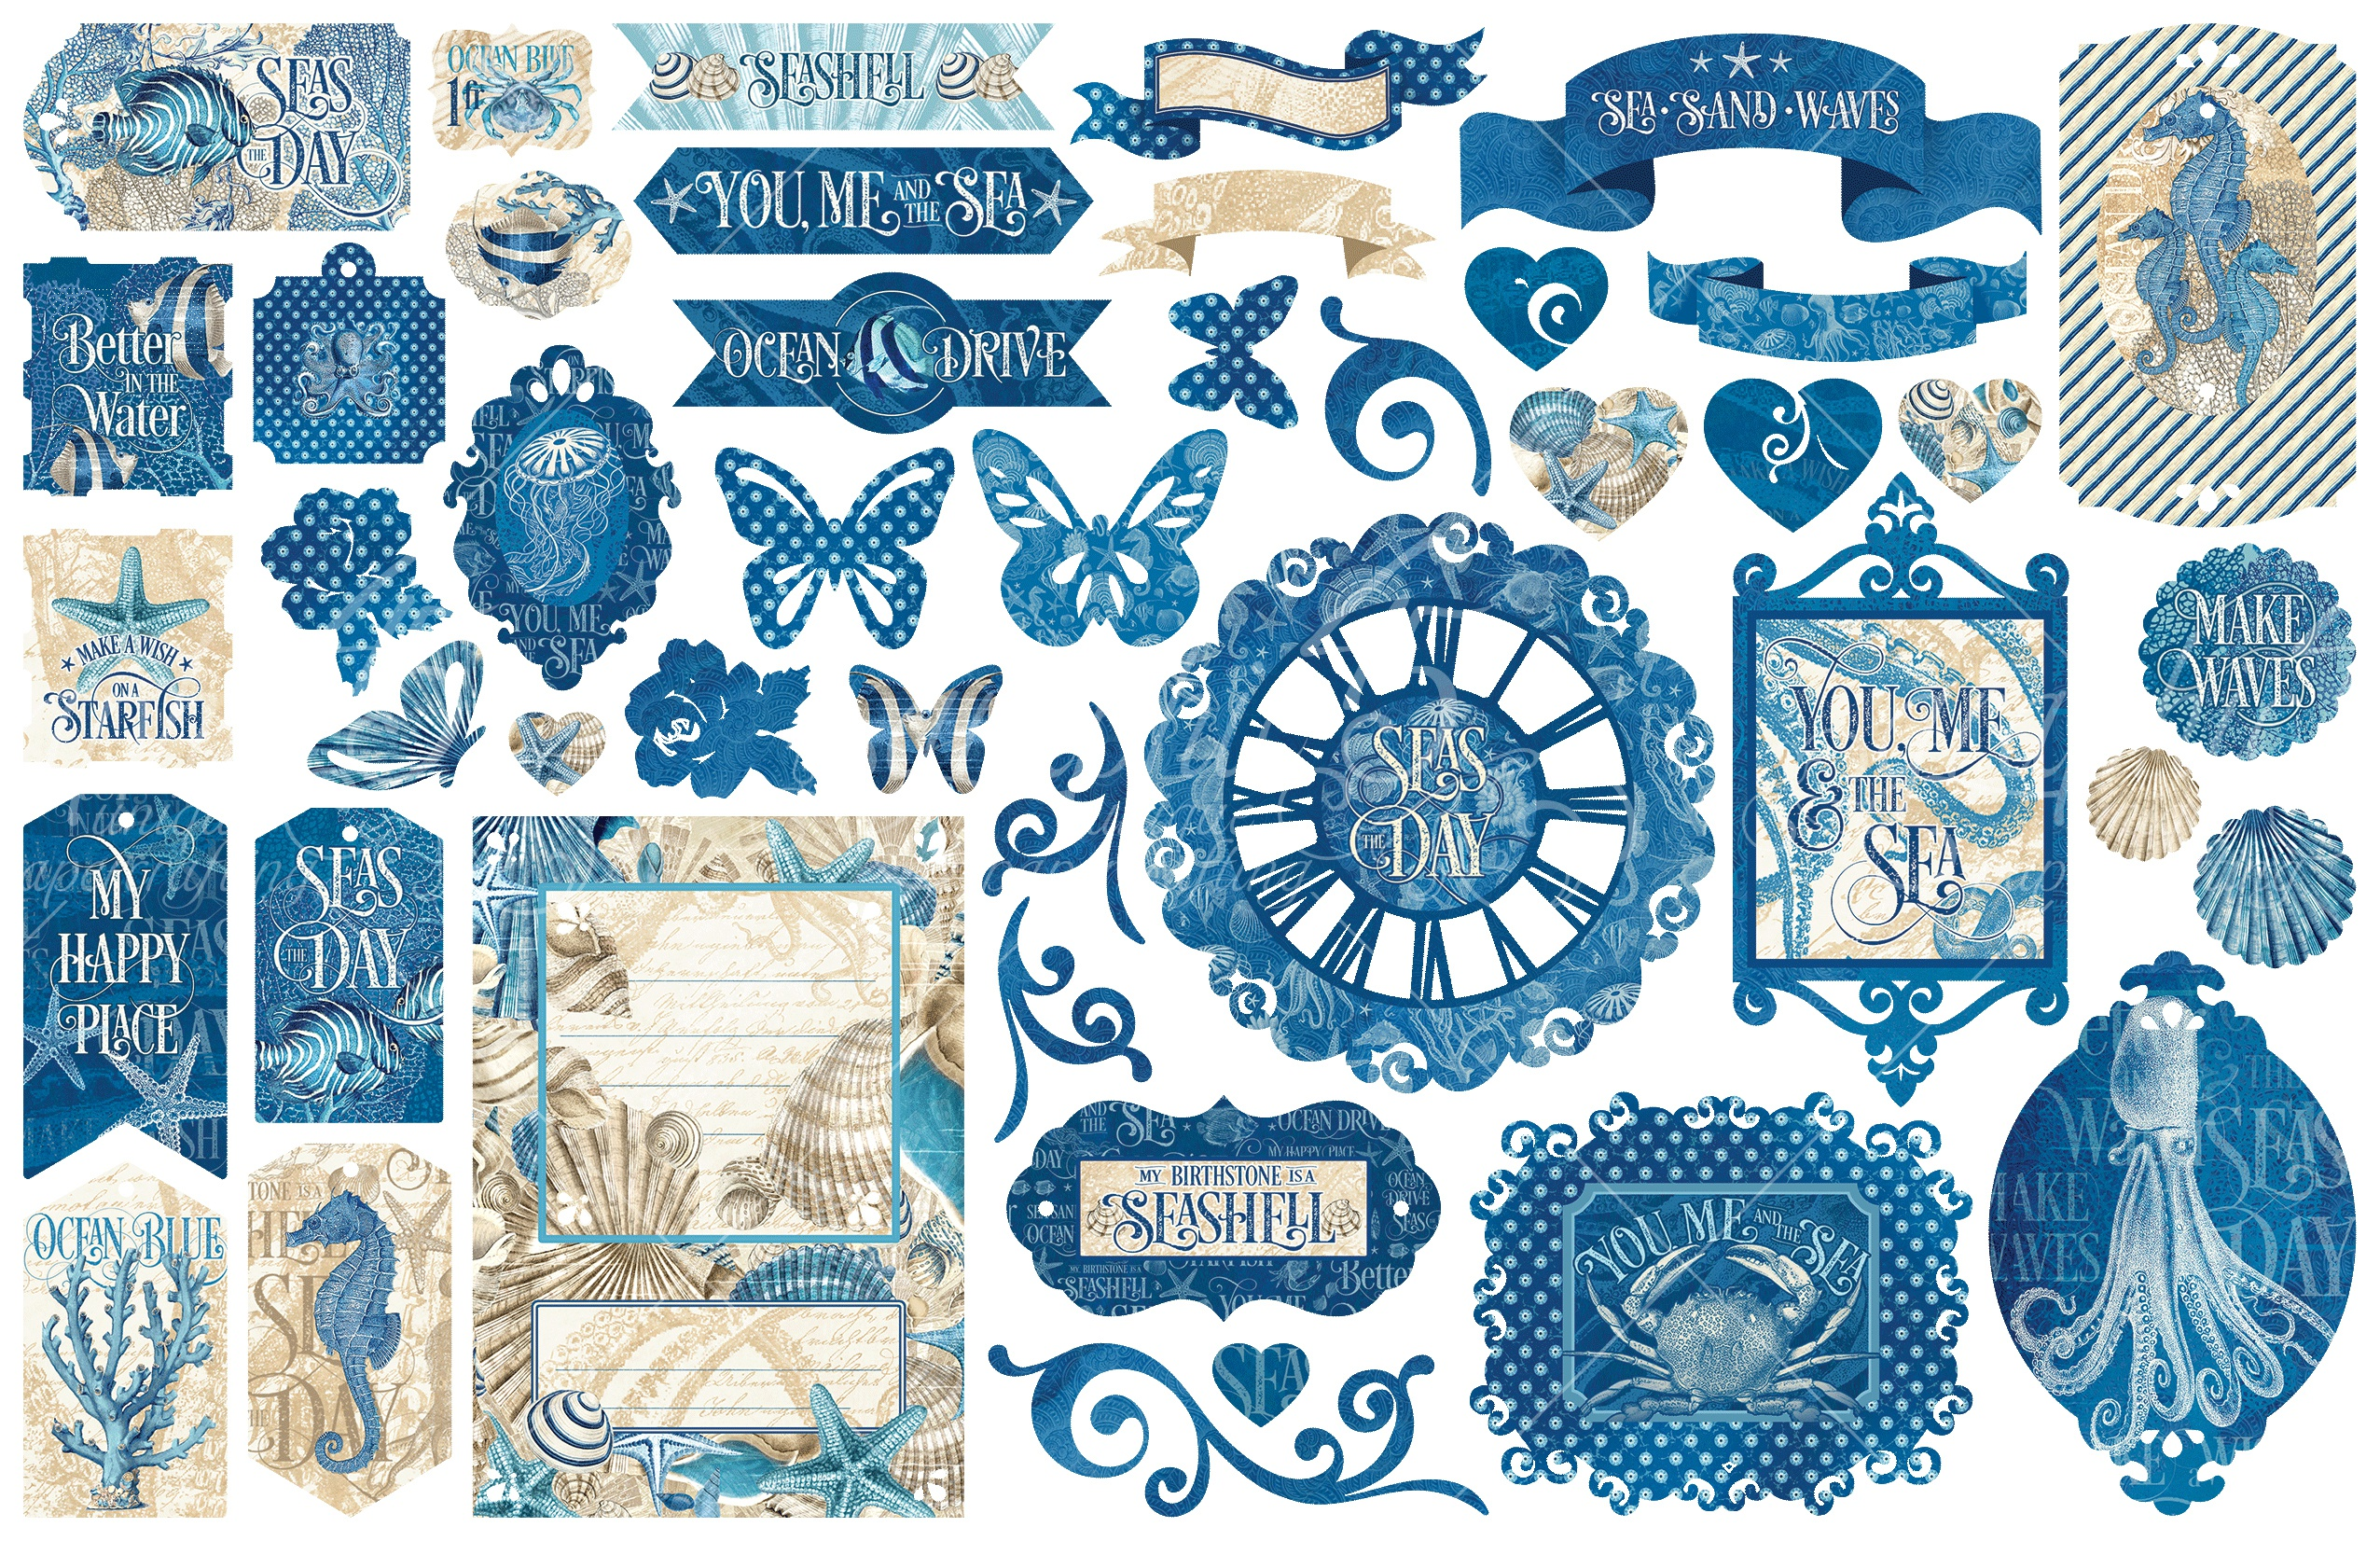 Ocean Blue Cardstock Die-Cut Assortment-